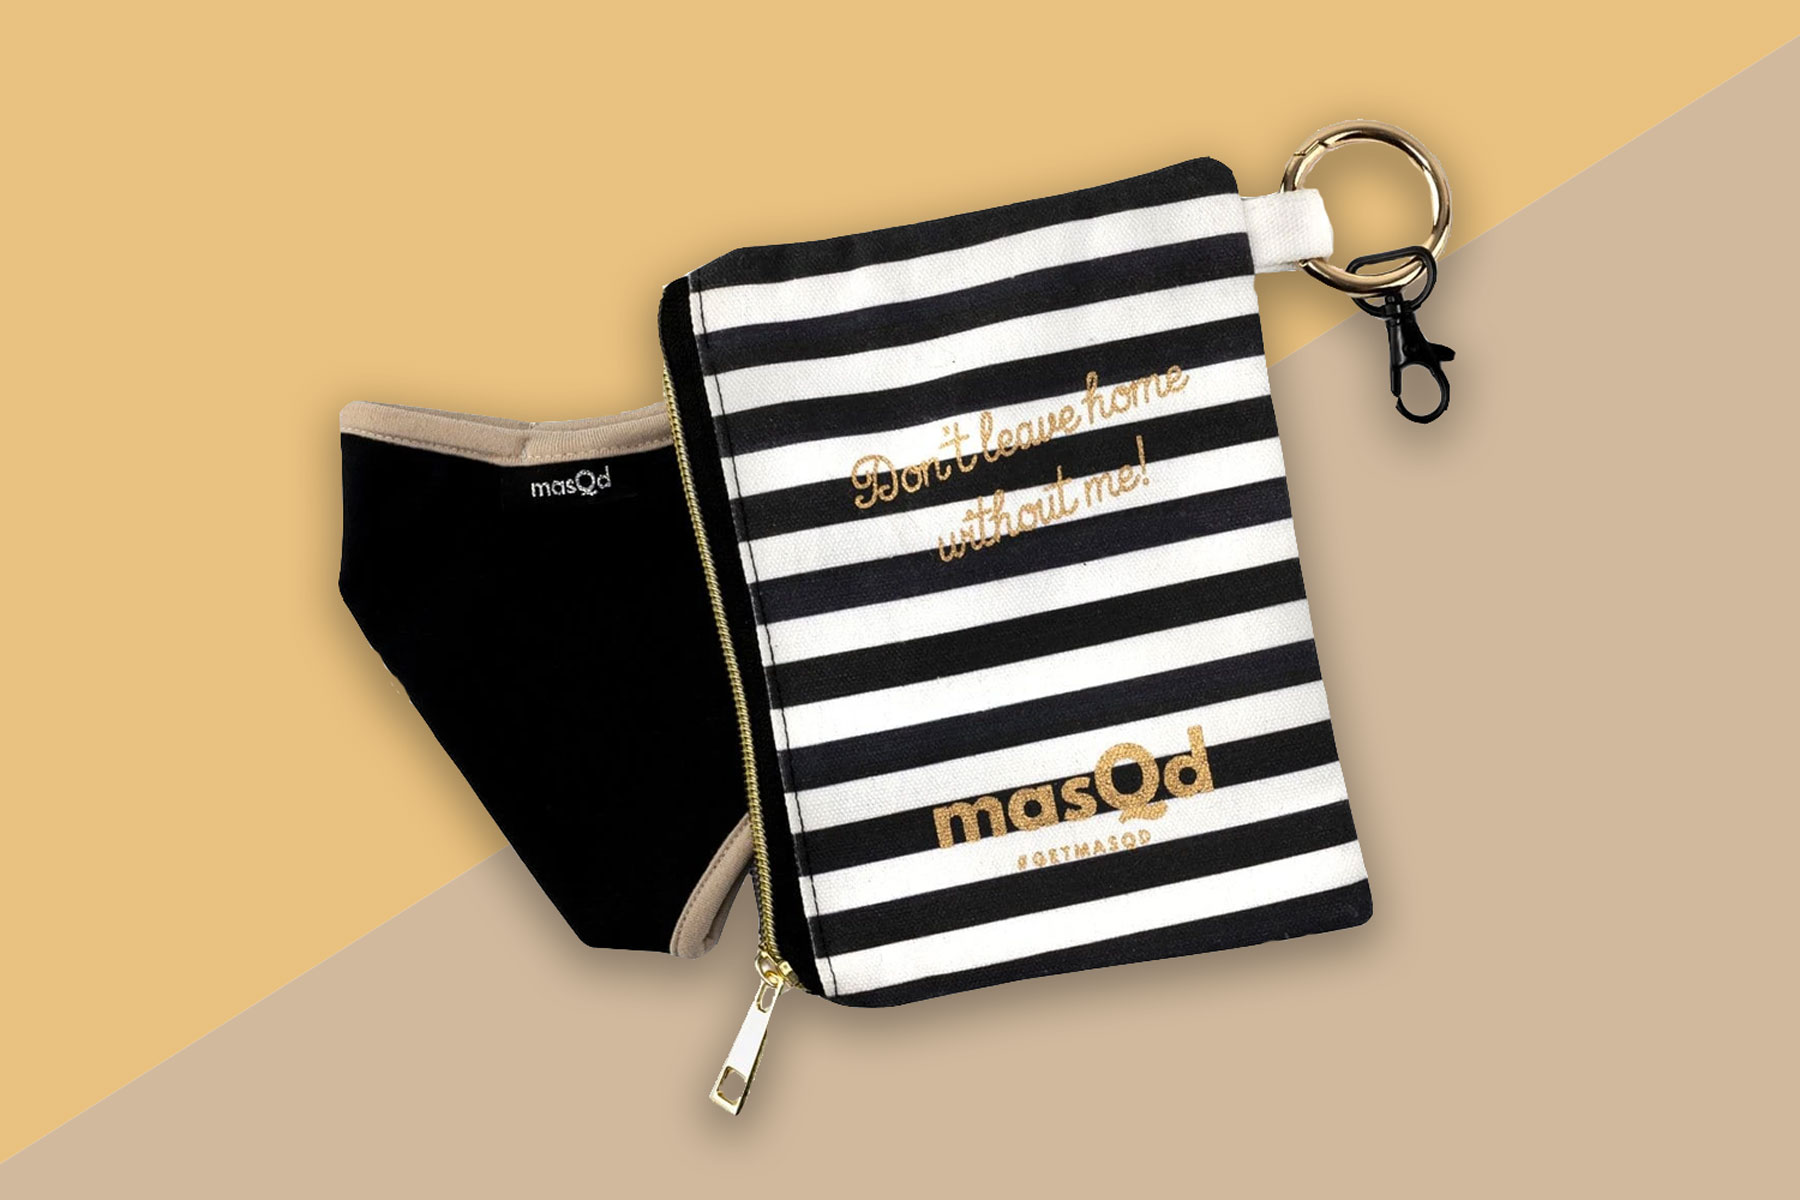 Face mask and striped black and white pouch